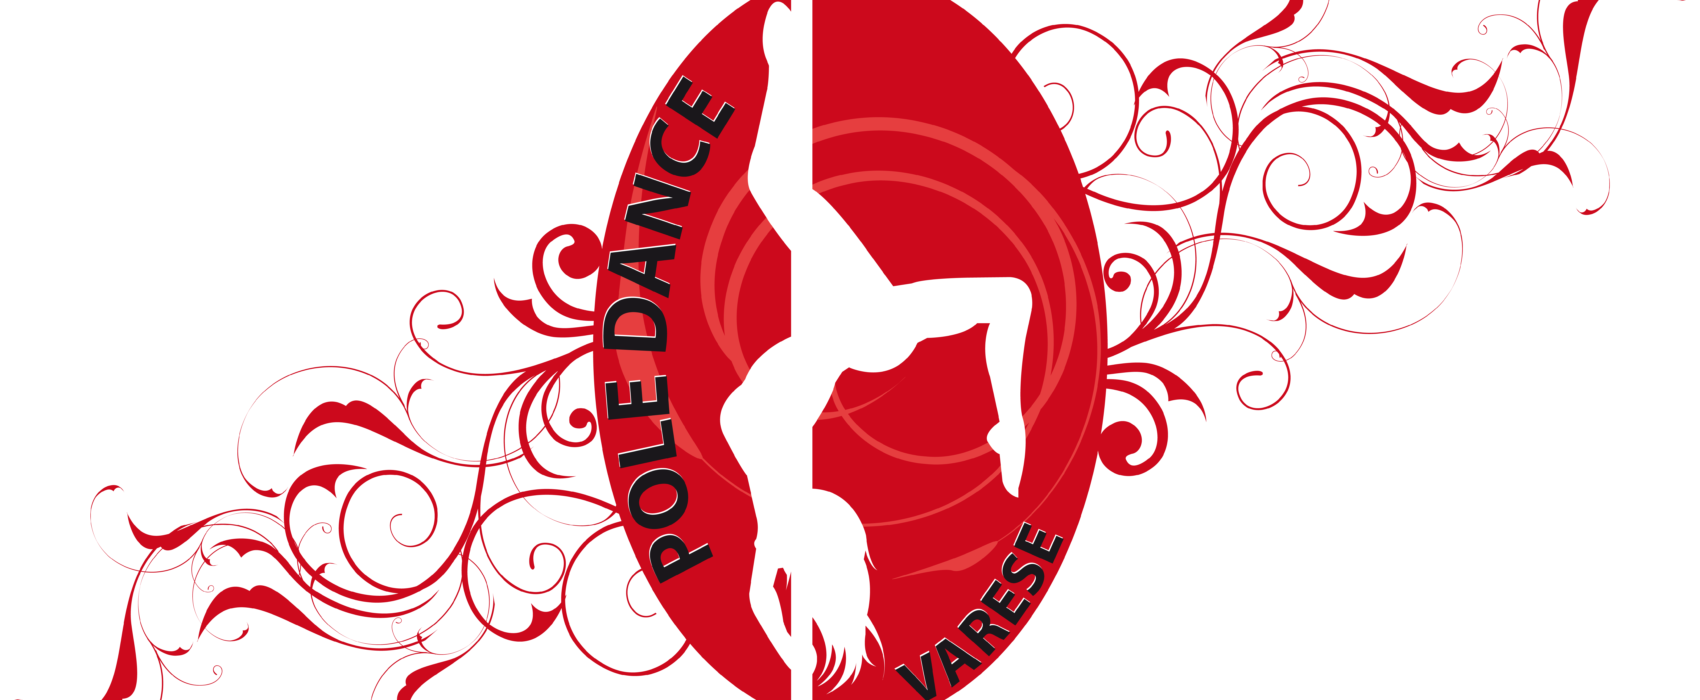 corsi pole dance gallarate